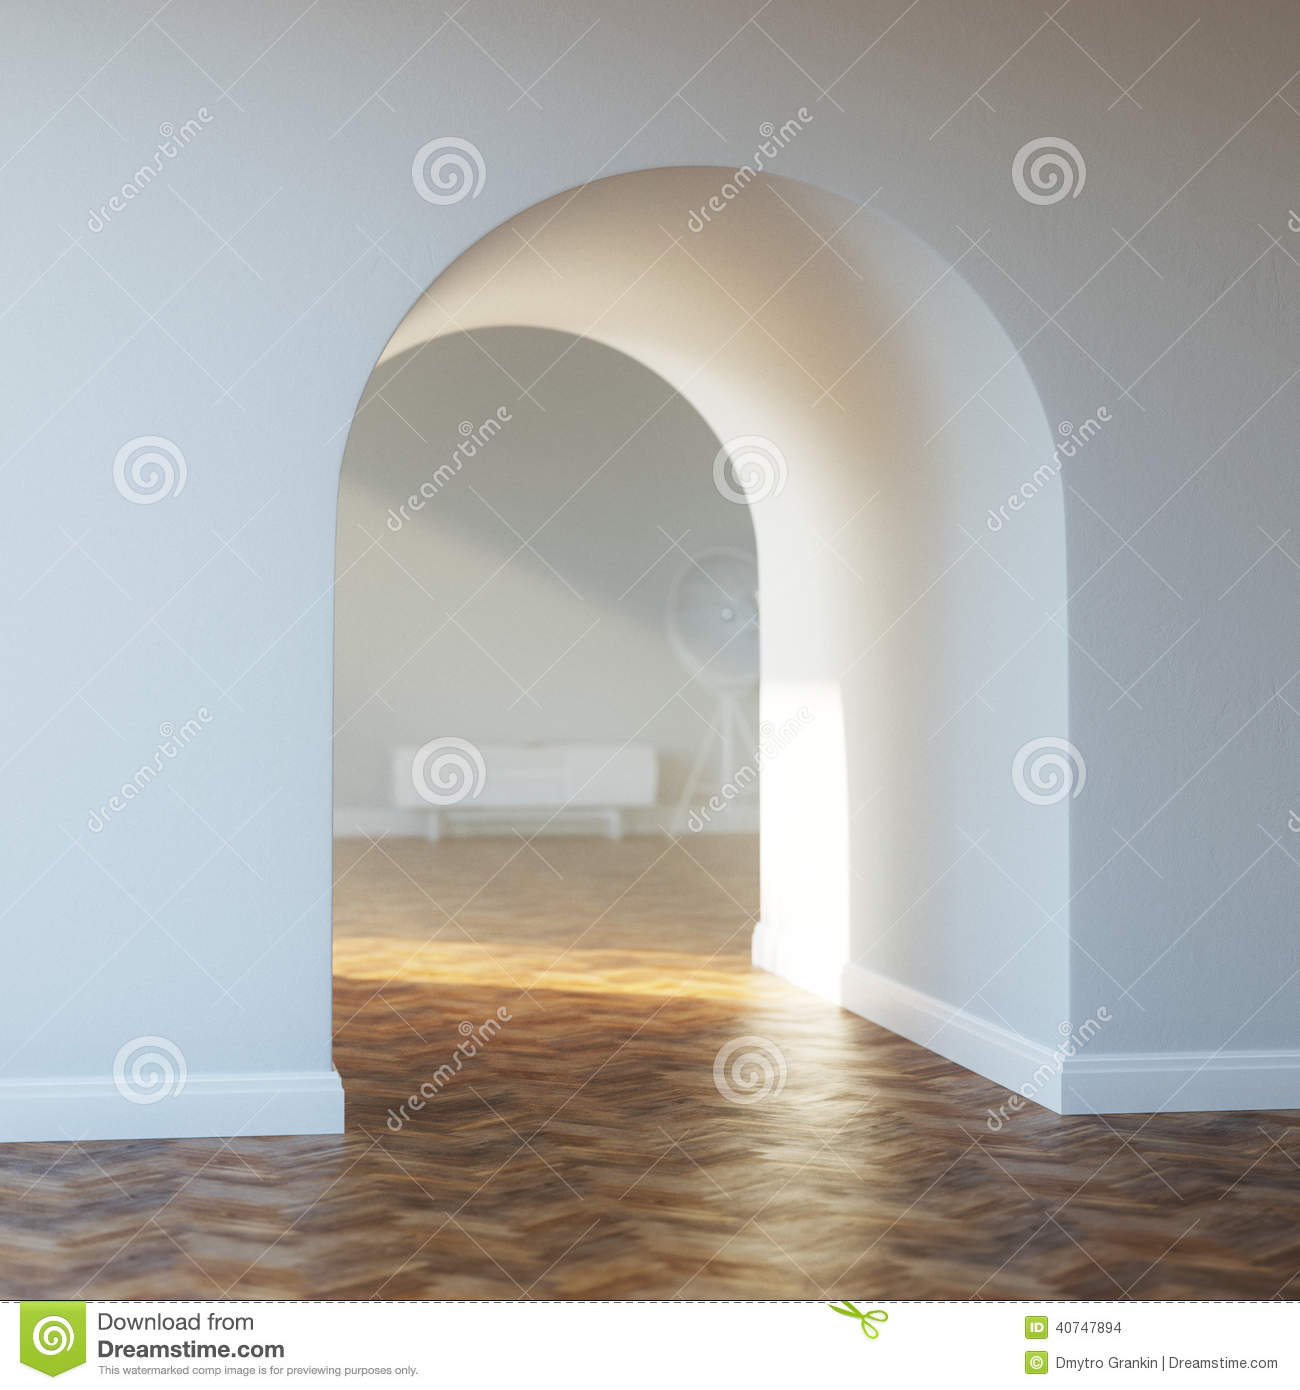 Beautiful Home Entrance With Wood Floor Interior With Arch Stock